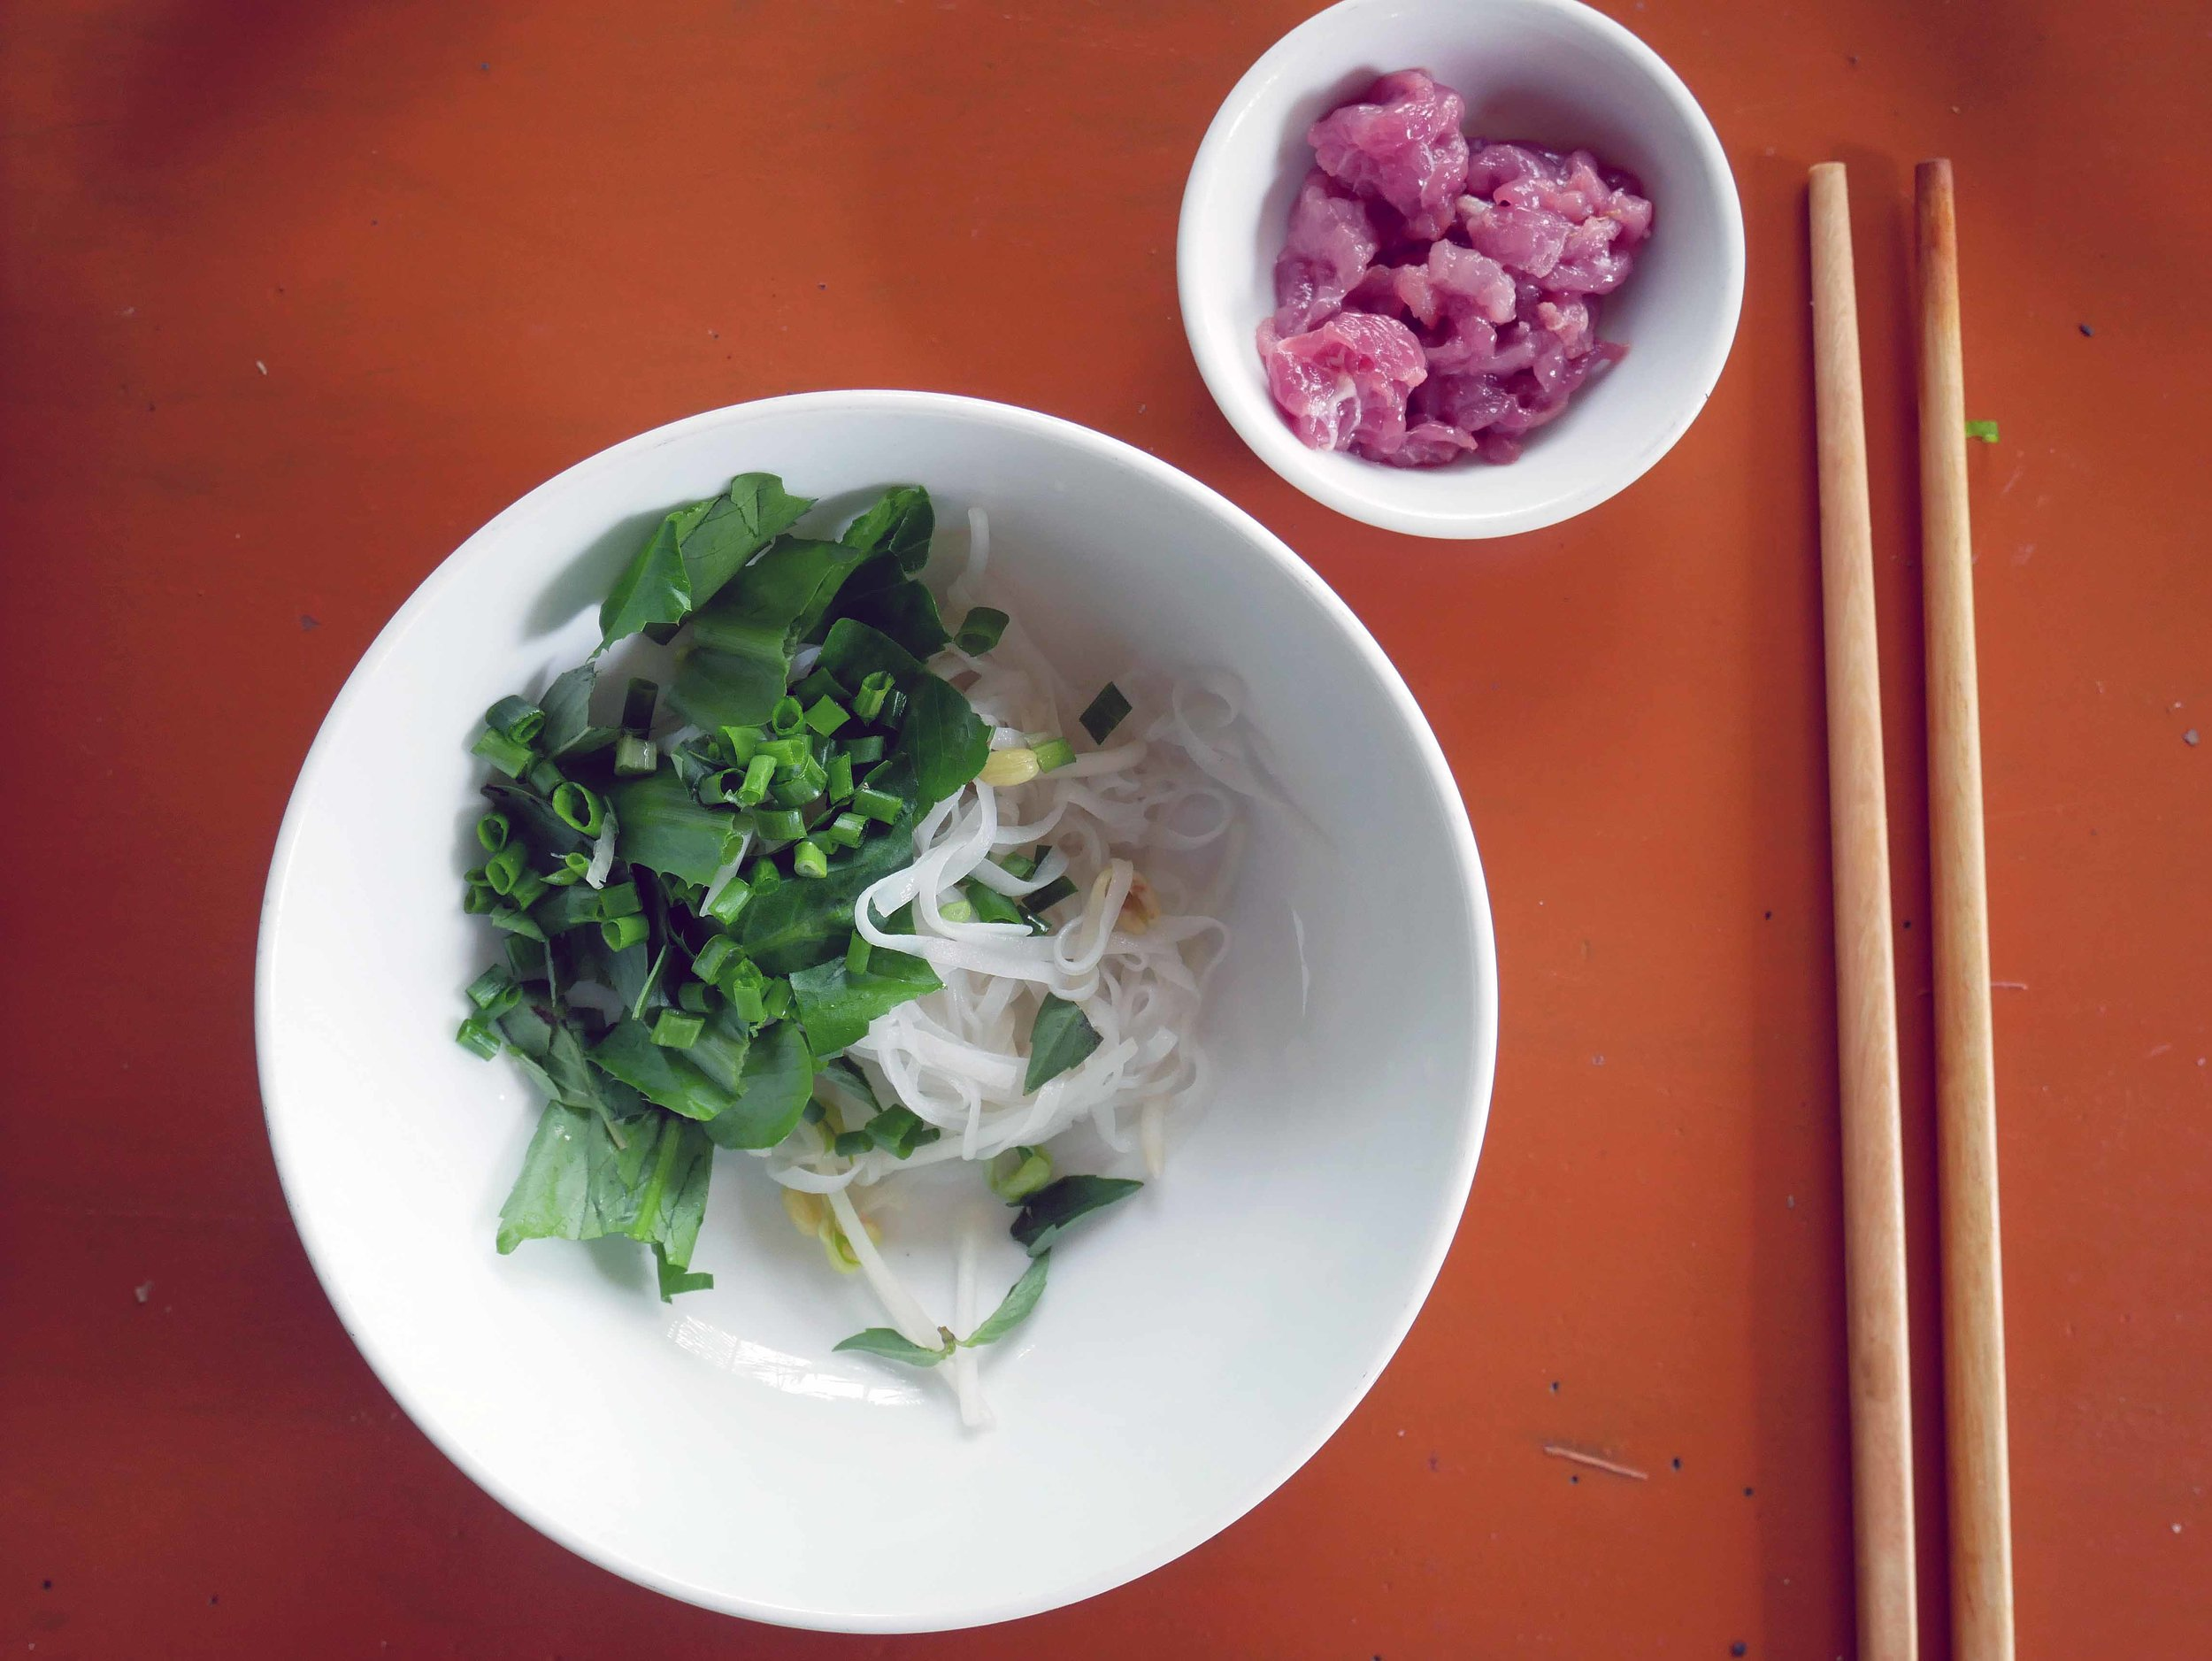 After briefly cooking the rice noodles for our Pho, we smothered them in bean sprouts, fresh mint and scallions, along with pickled shallot, in anticipation for the steaming beef broth.